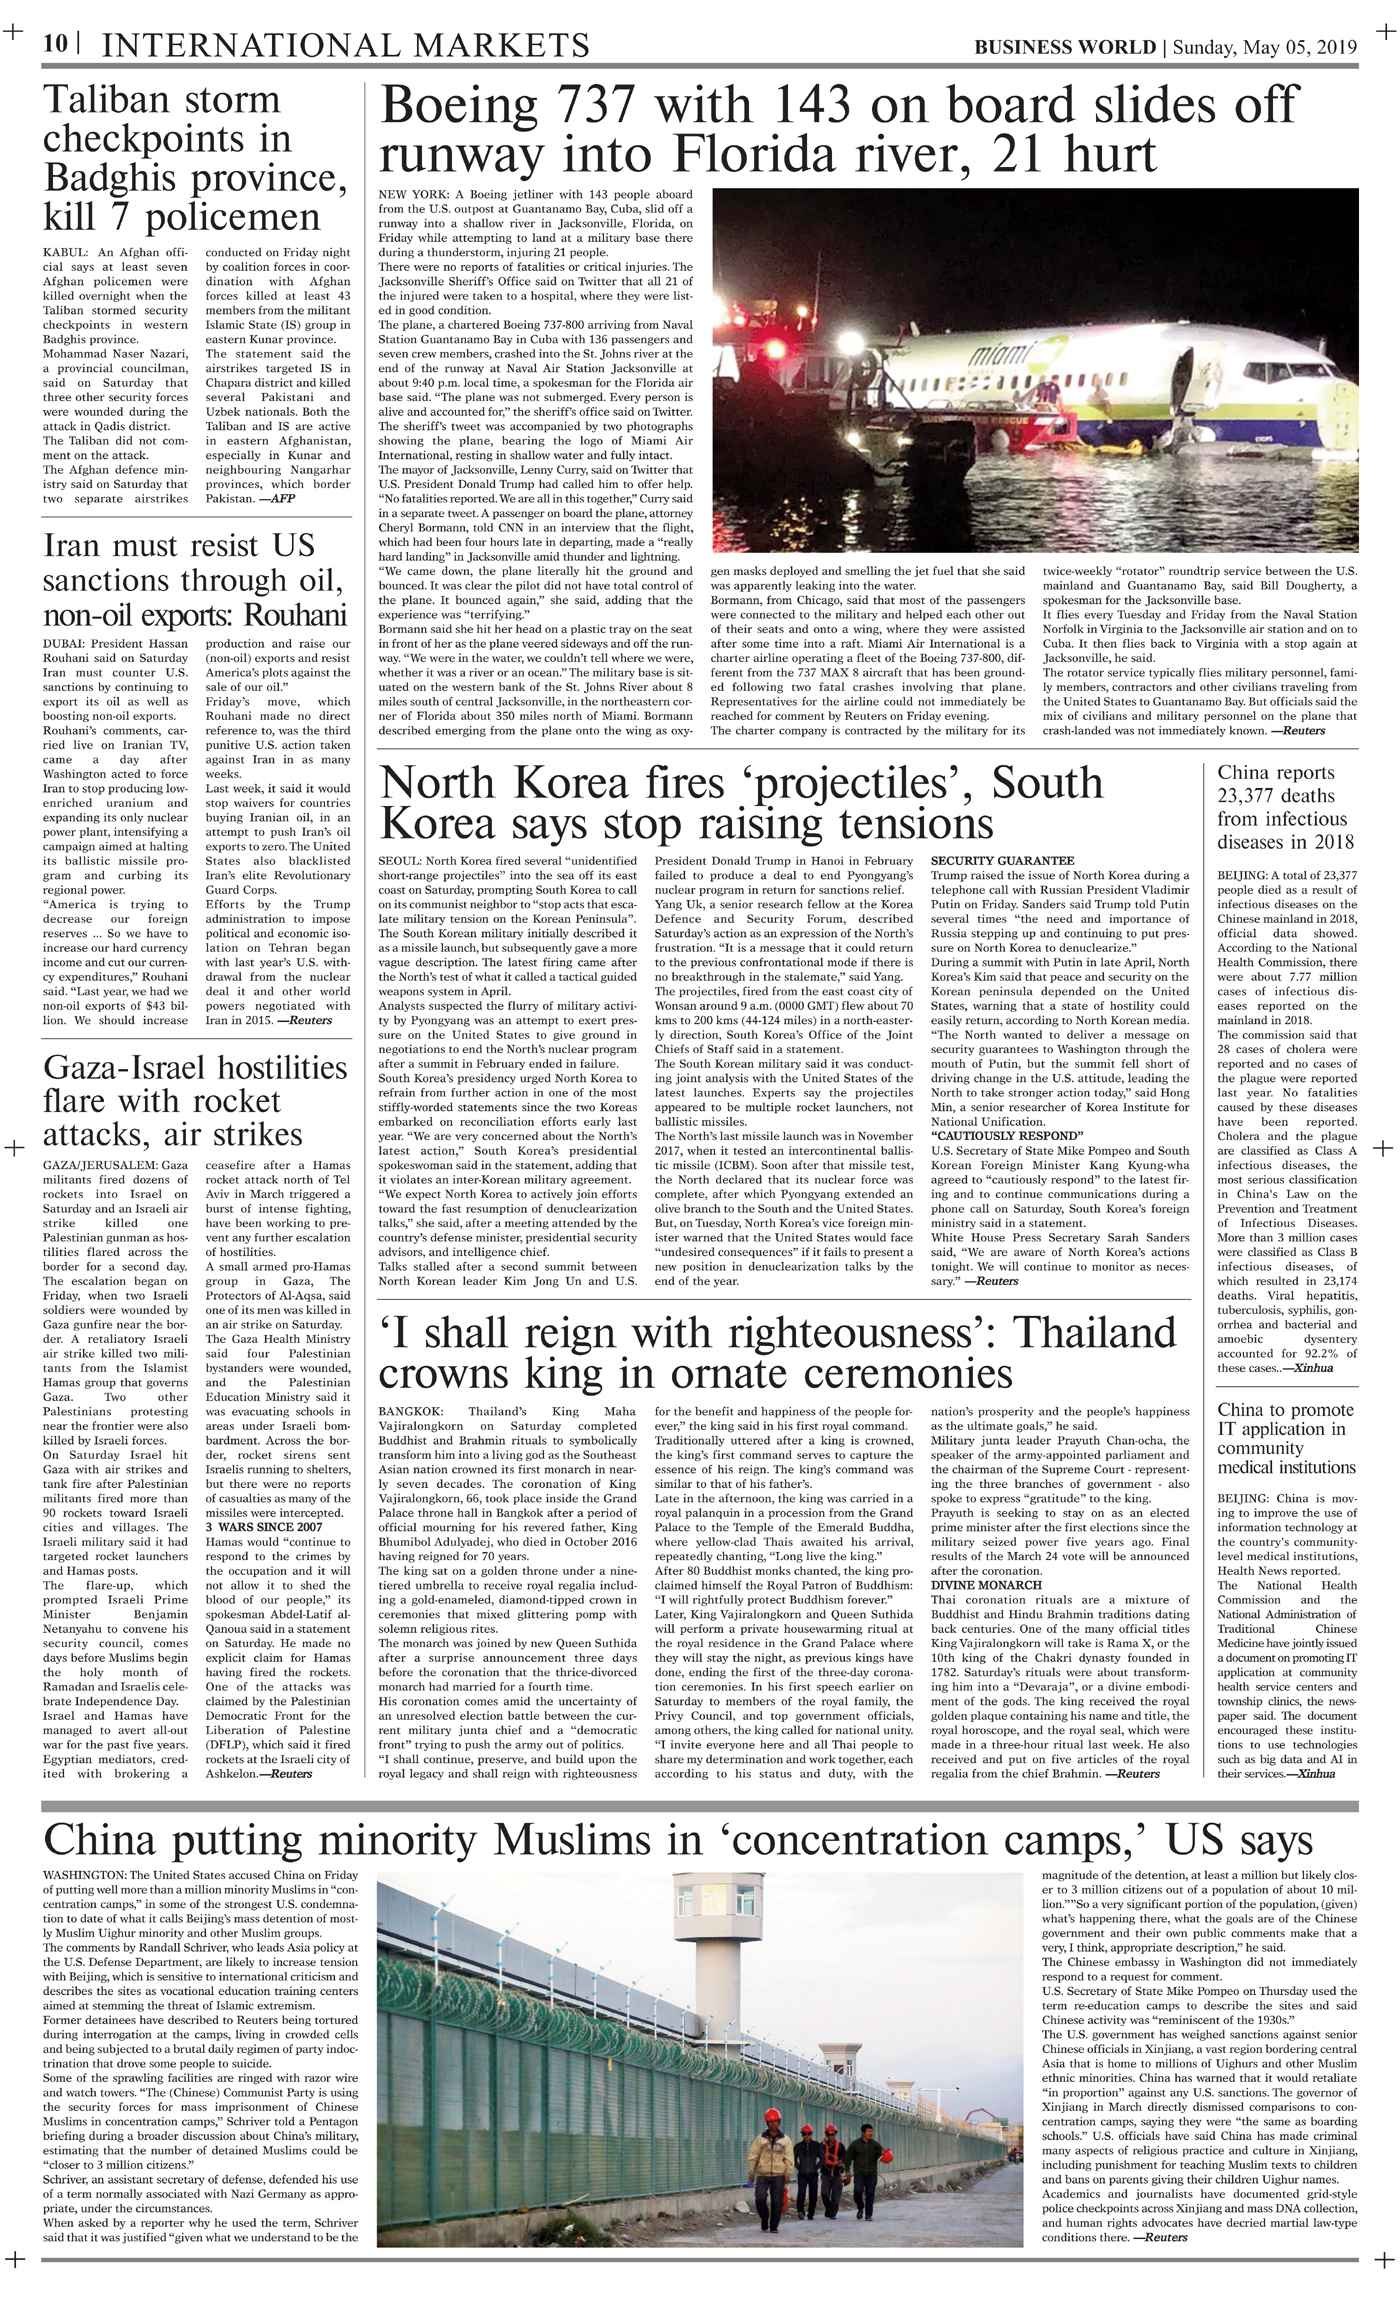 Daily Business World E-Paper 5th May 2019 - Daily Business World